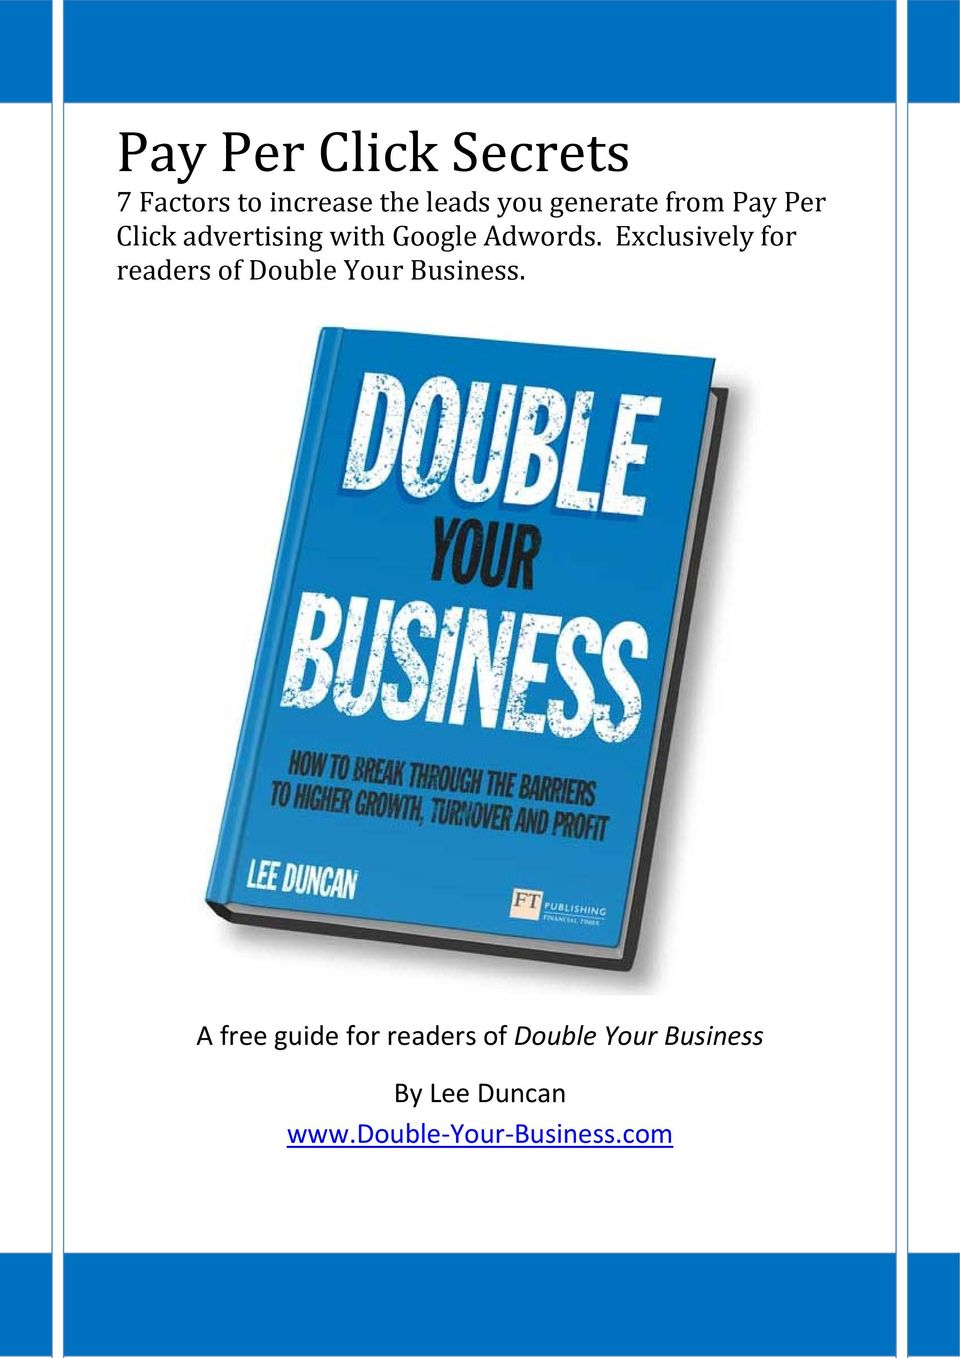 Exclusively for readers of Double Your Business.